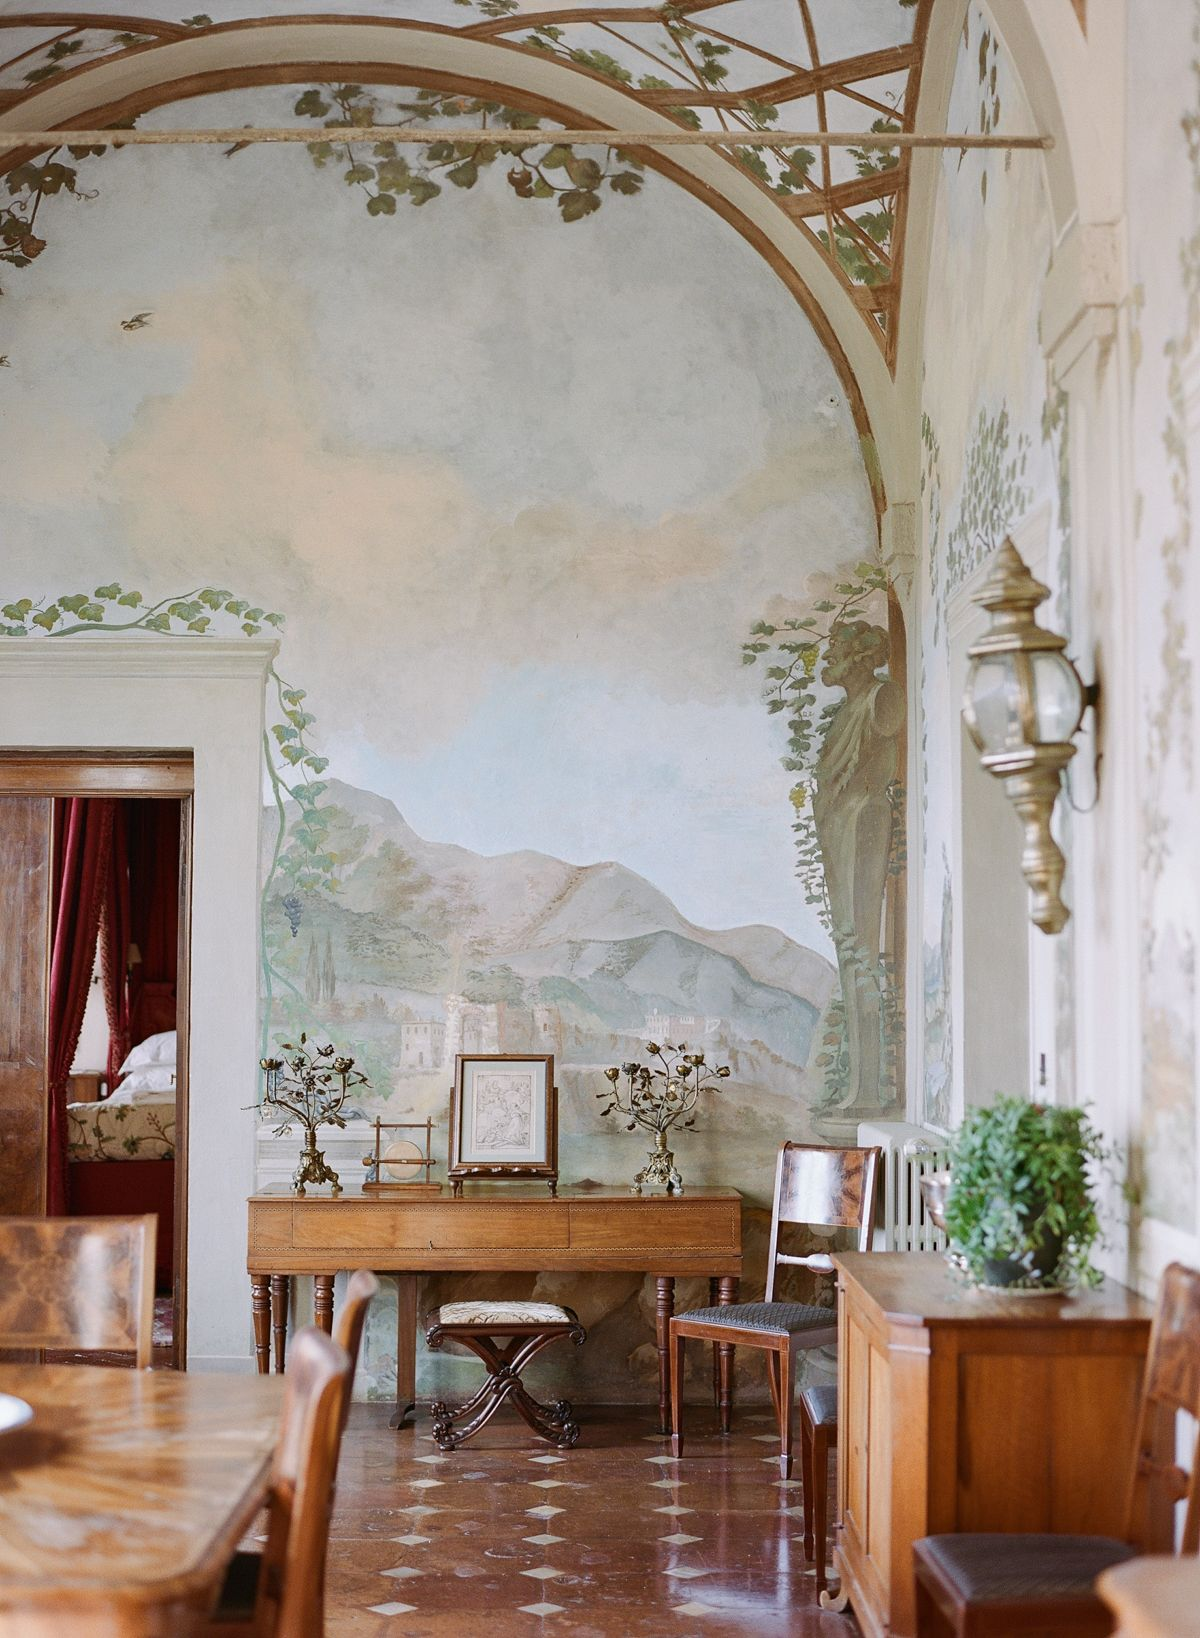 Luxury Italian Destination Wedding as Seen in Martha Stewart Weddings